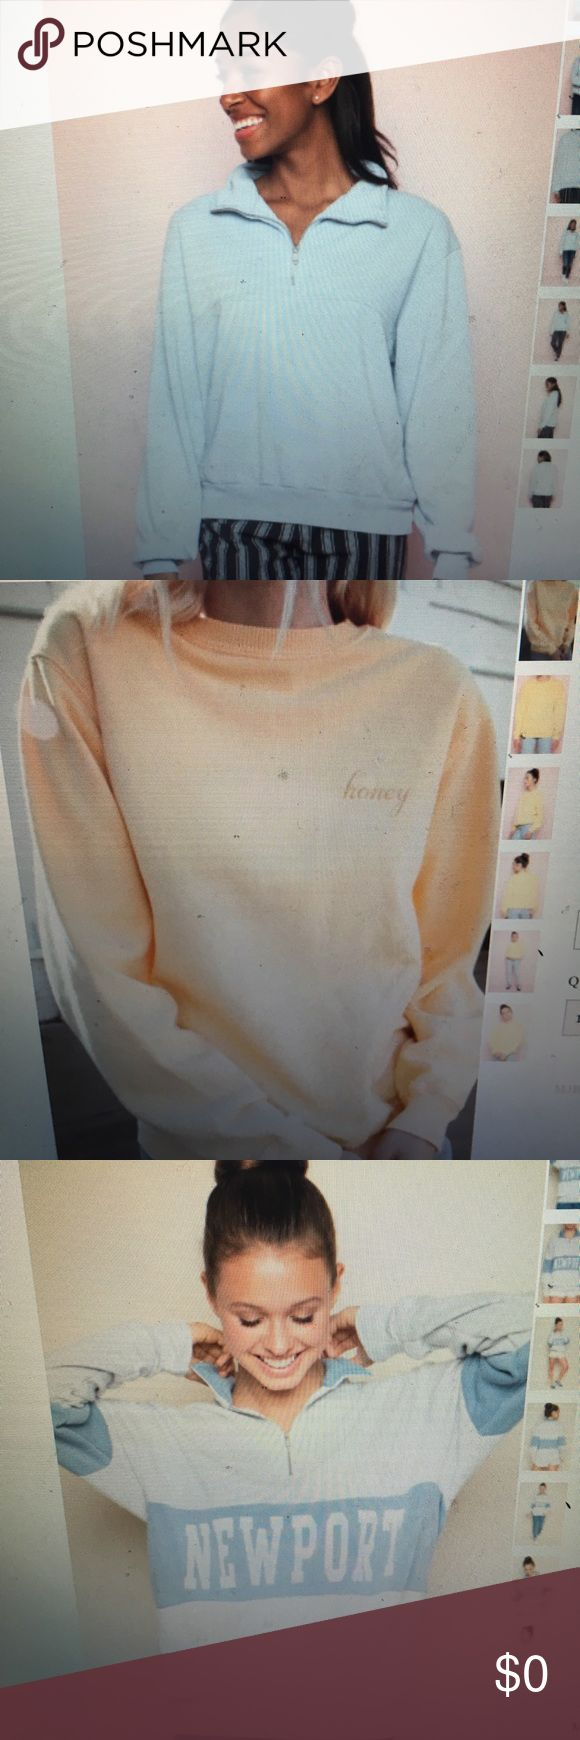 ISO Help me out in search of. I know the original prices. People jack them up on here. Just looking for a fair deal. Brandy Melville Tops